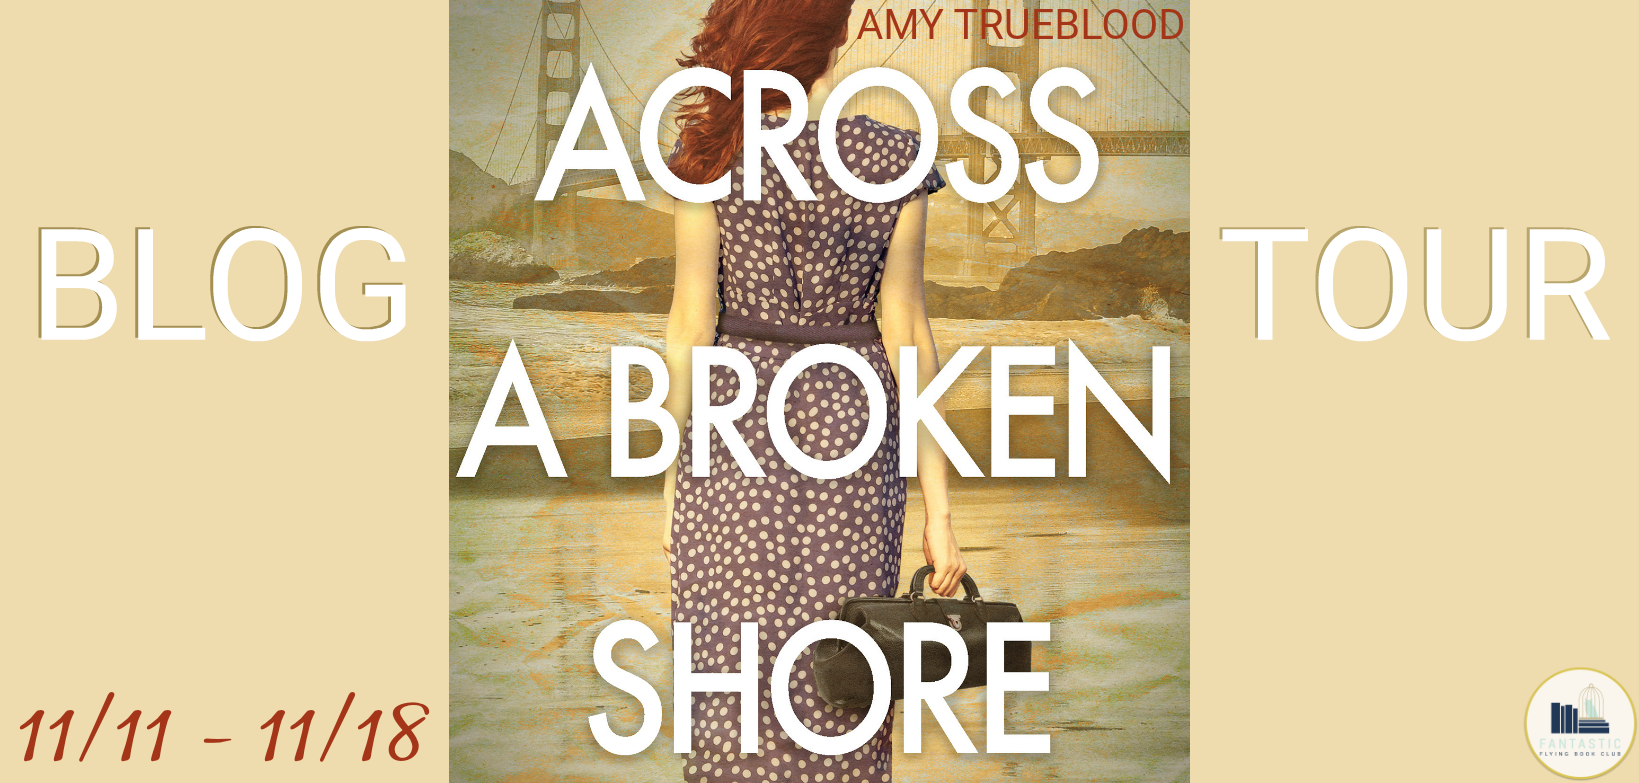 Blog Tour: Across a Broken Shore by Amy Trueblood (Creative Post+ Giveaway!)